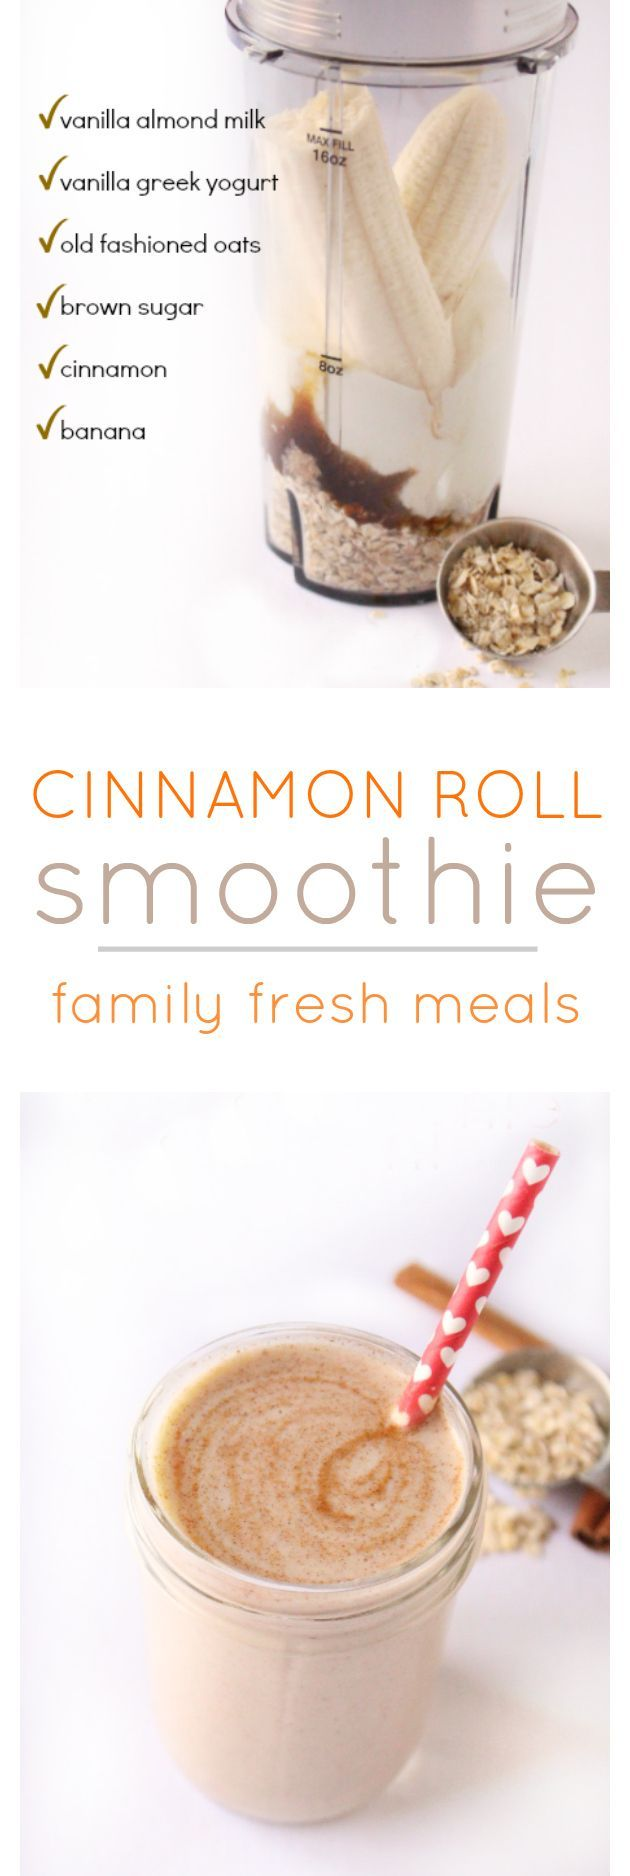 Cinnamon Roll Smoothie! Taste just like a cinnamon bun shoved into a glass. Healthy Smoothies #healthy